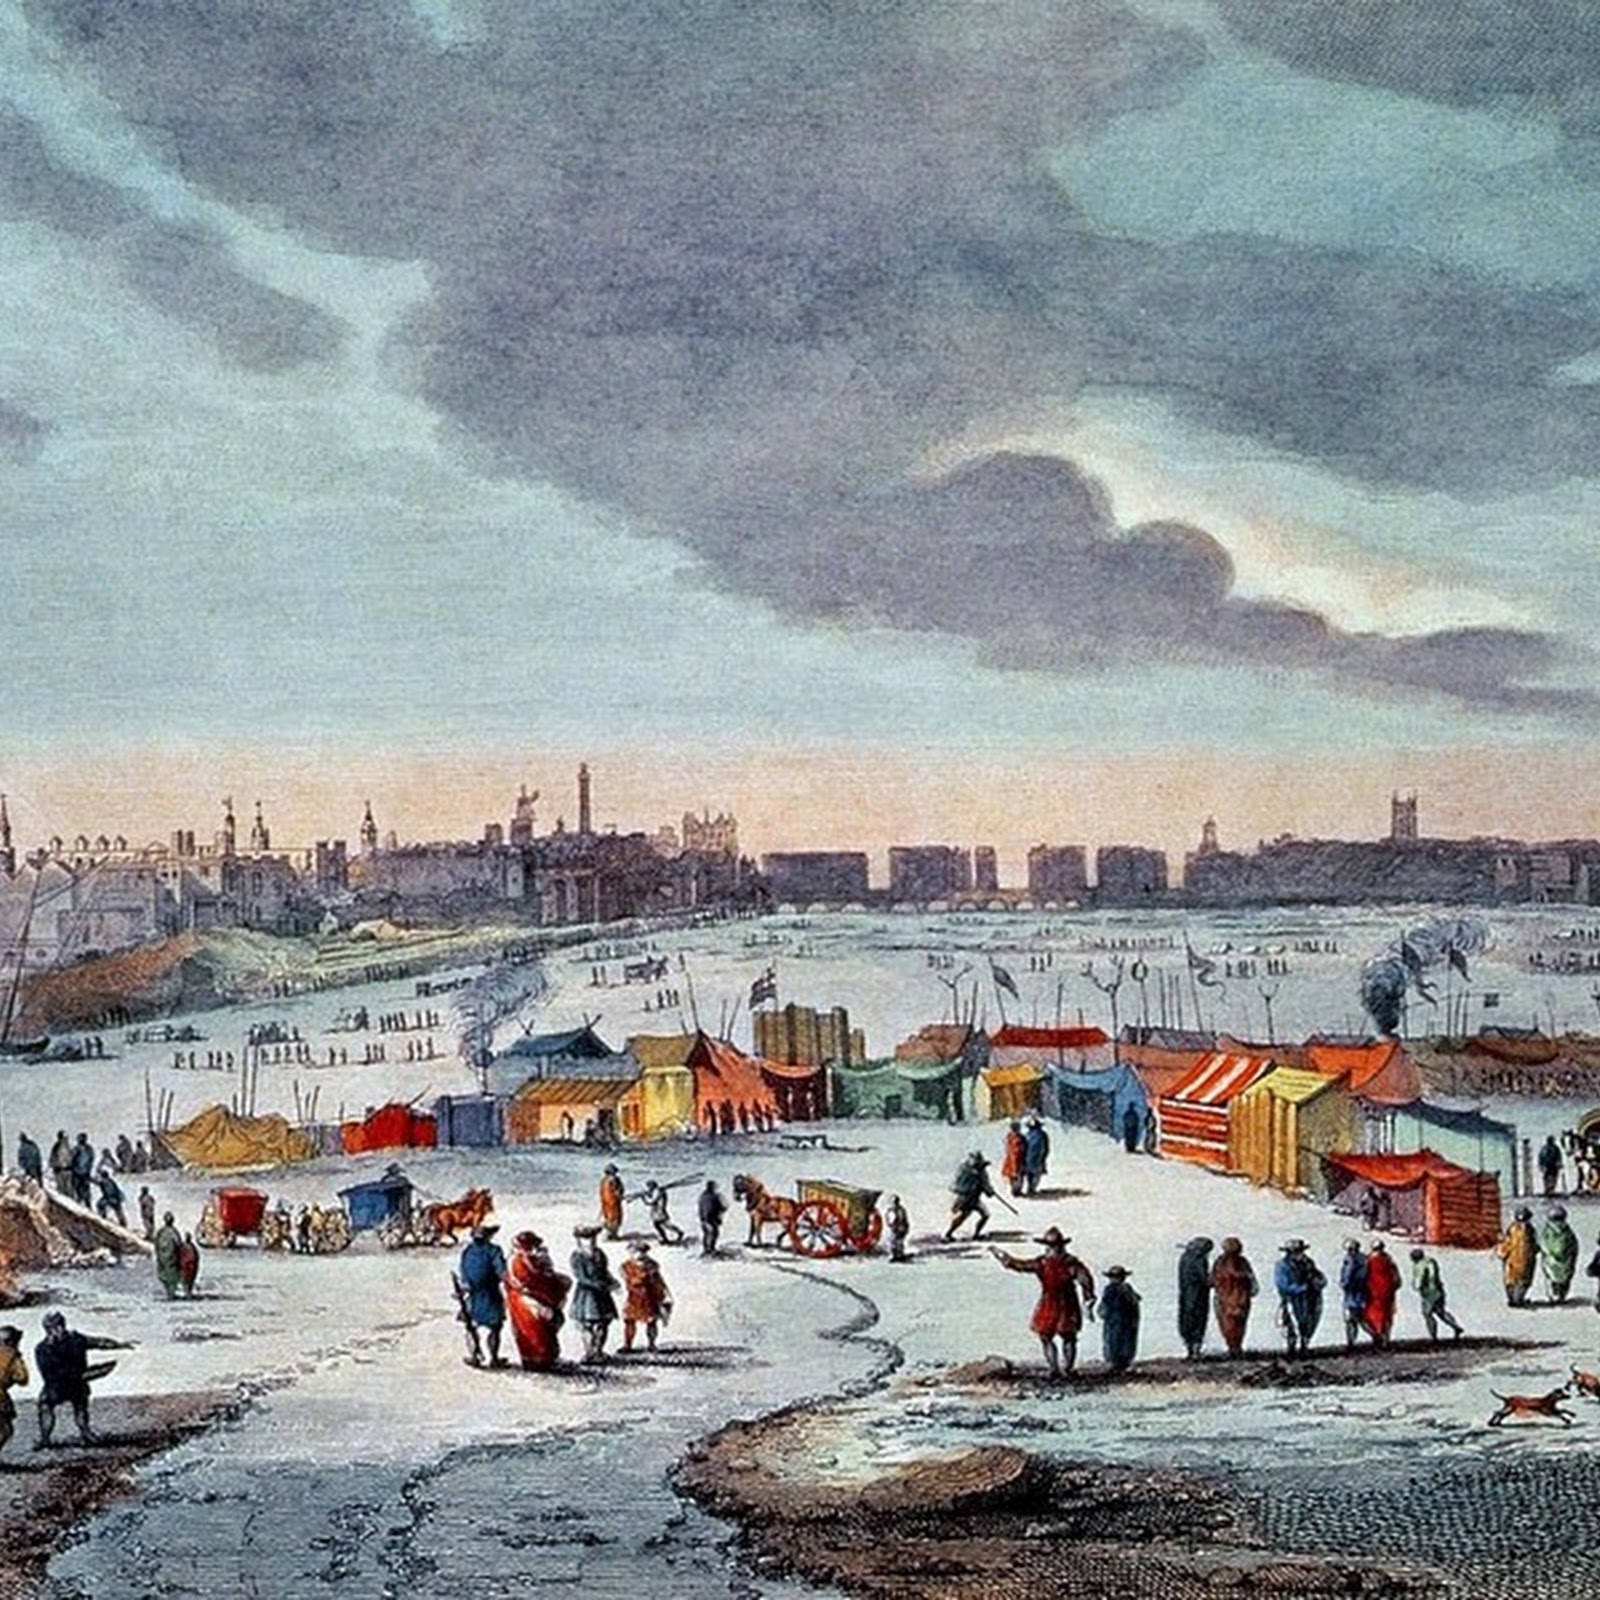 The Frost Fairs of River Thames